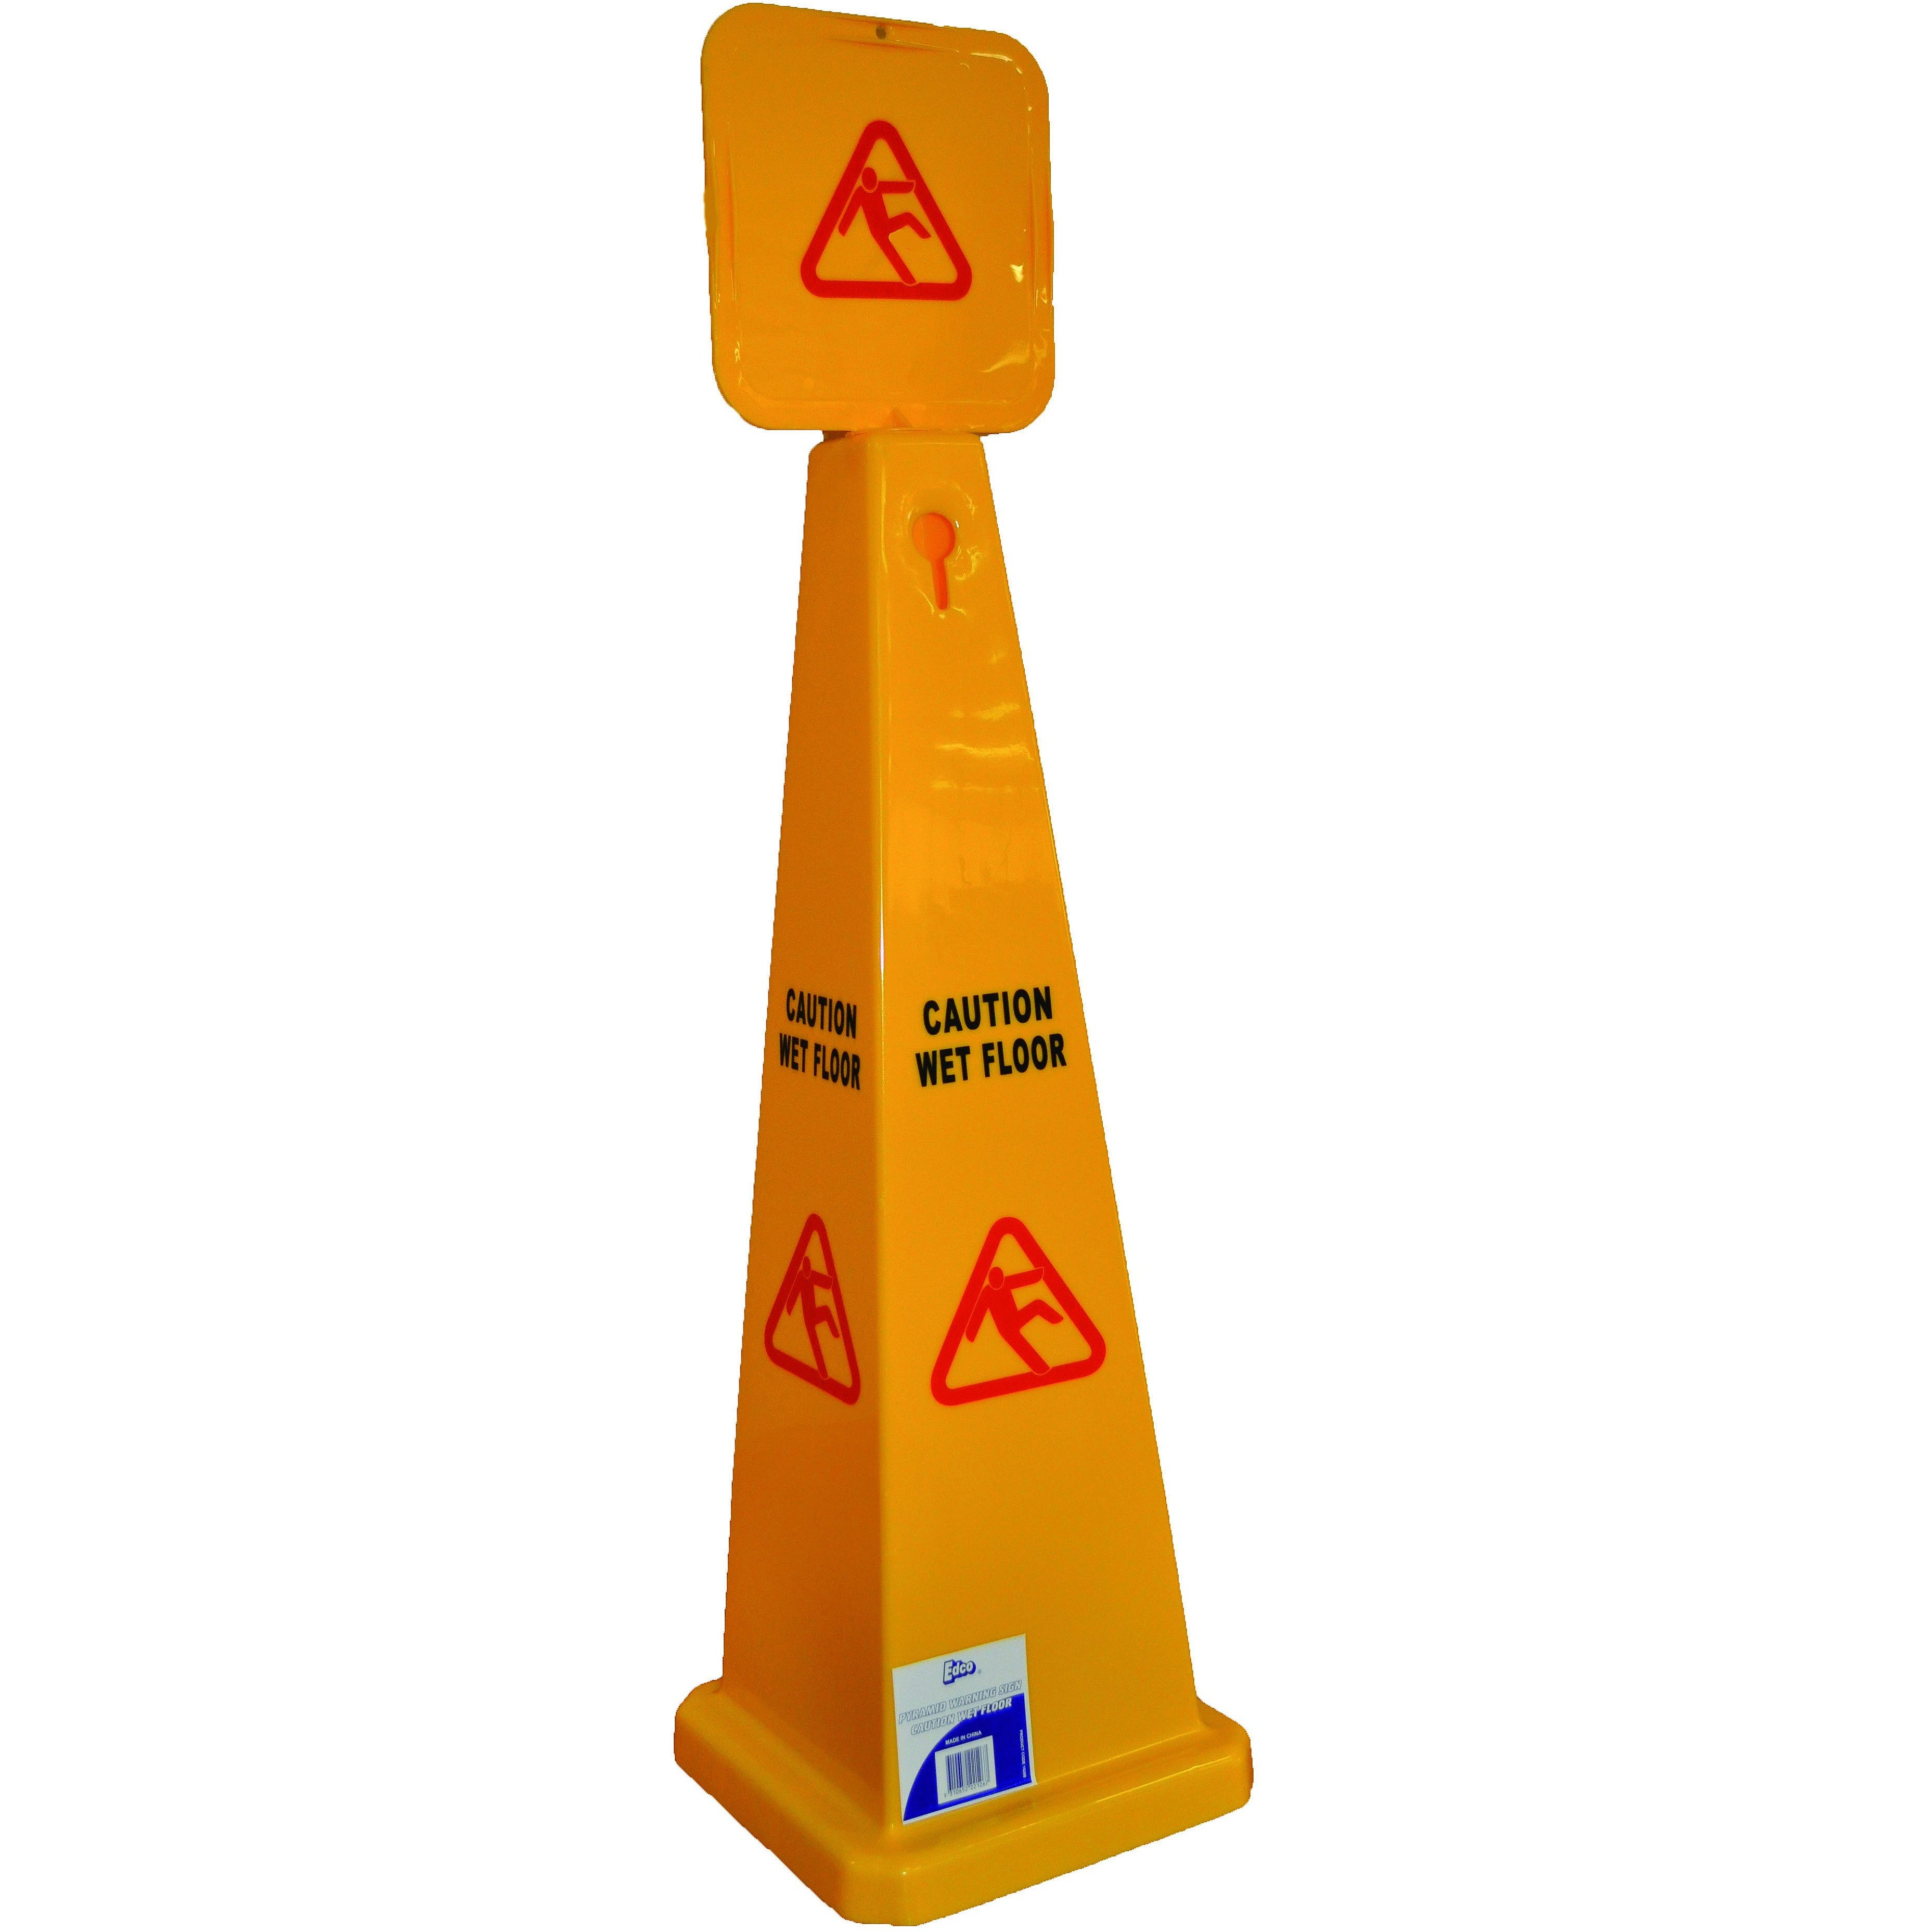 EDCO PYRAMID CAUTION WET FLOOR SIGN YELLOW 900MM